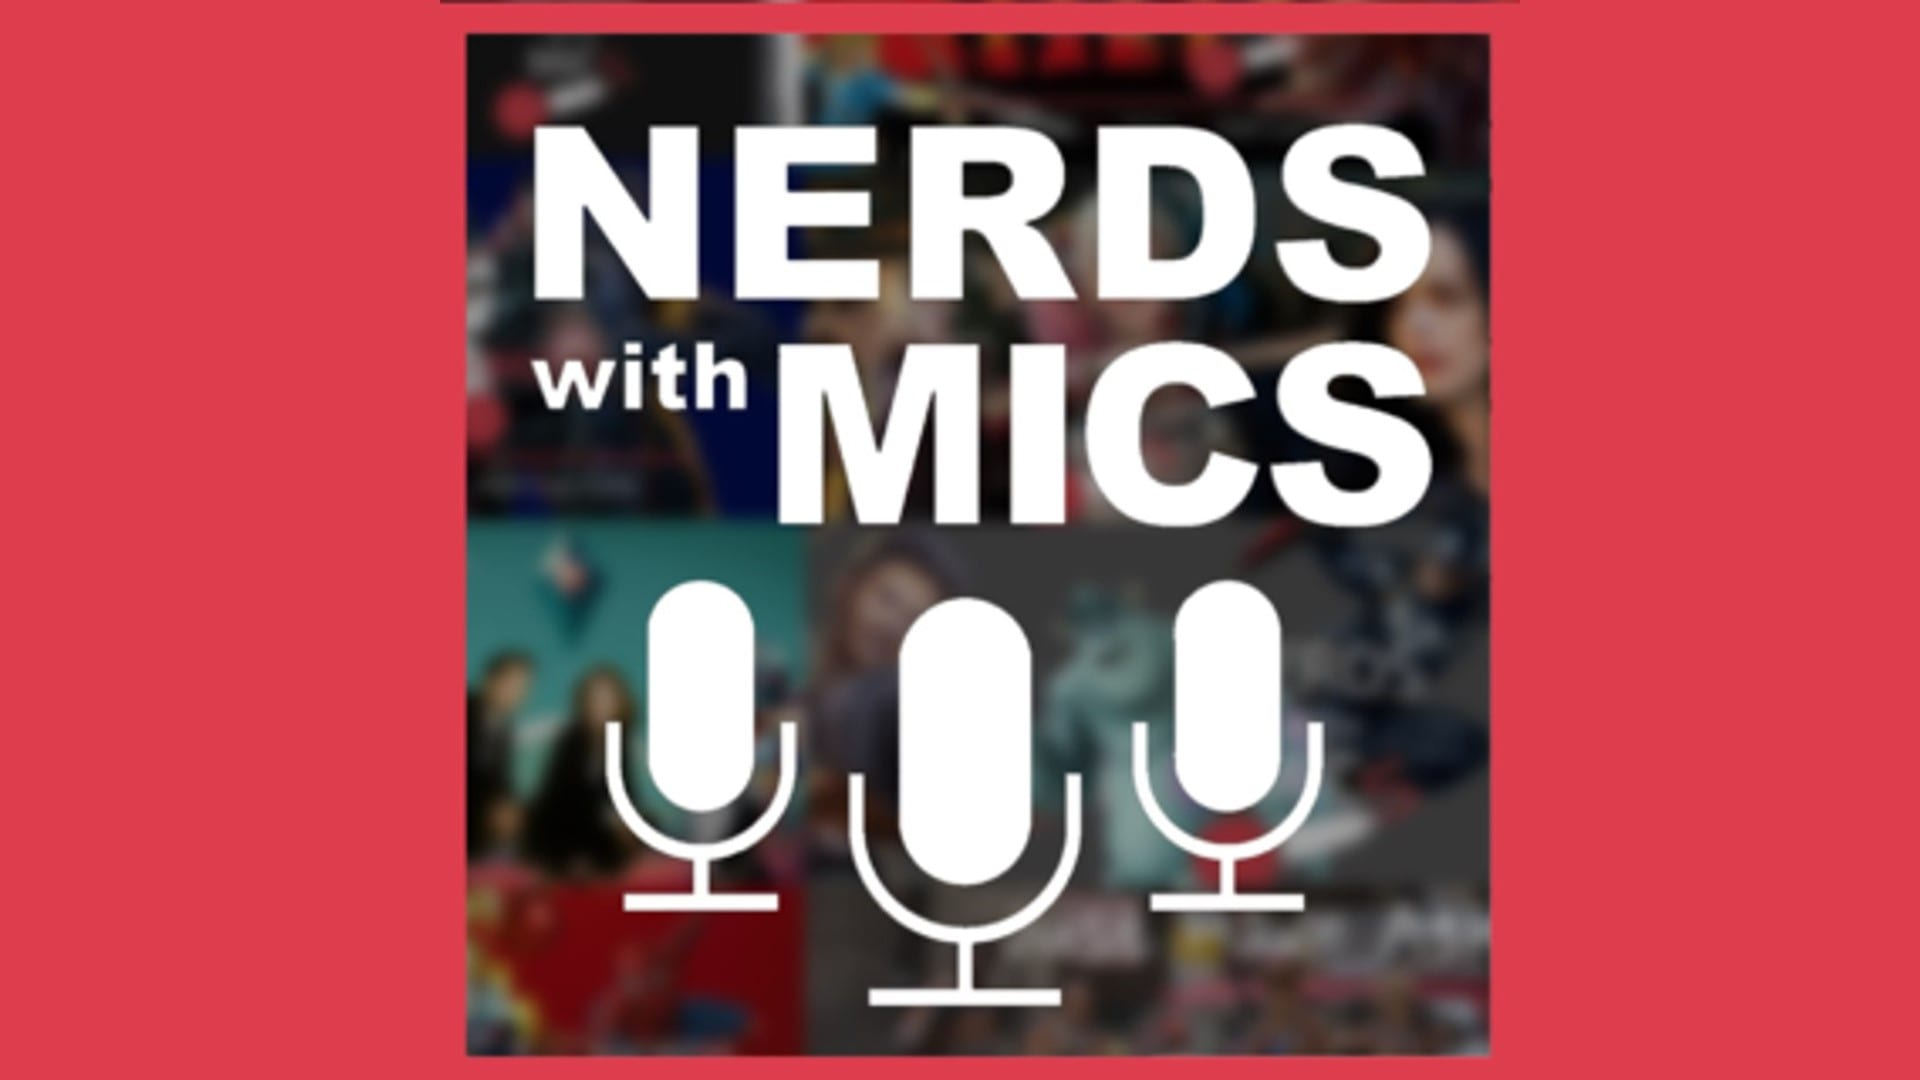 Nerds With Mics: For Nerds By Nerds